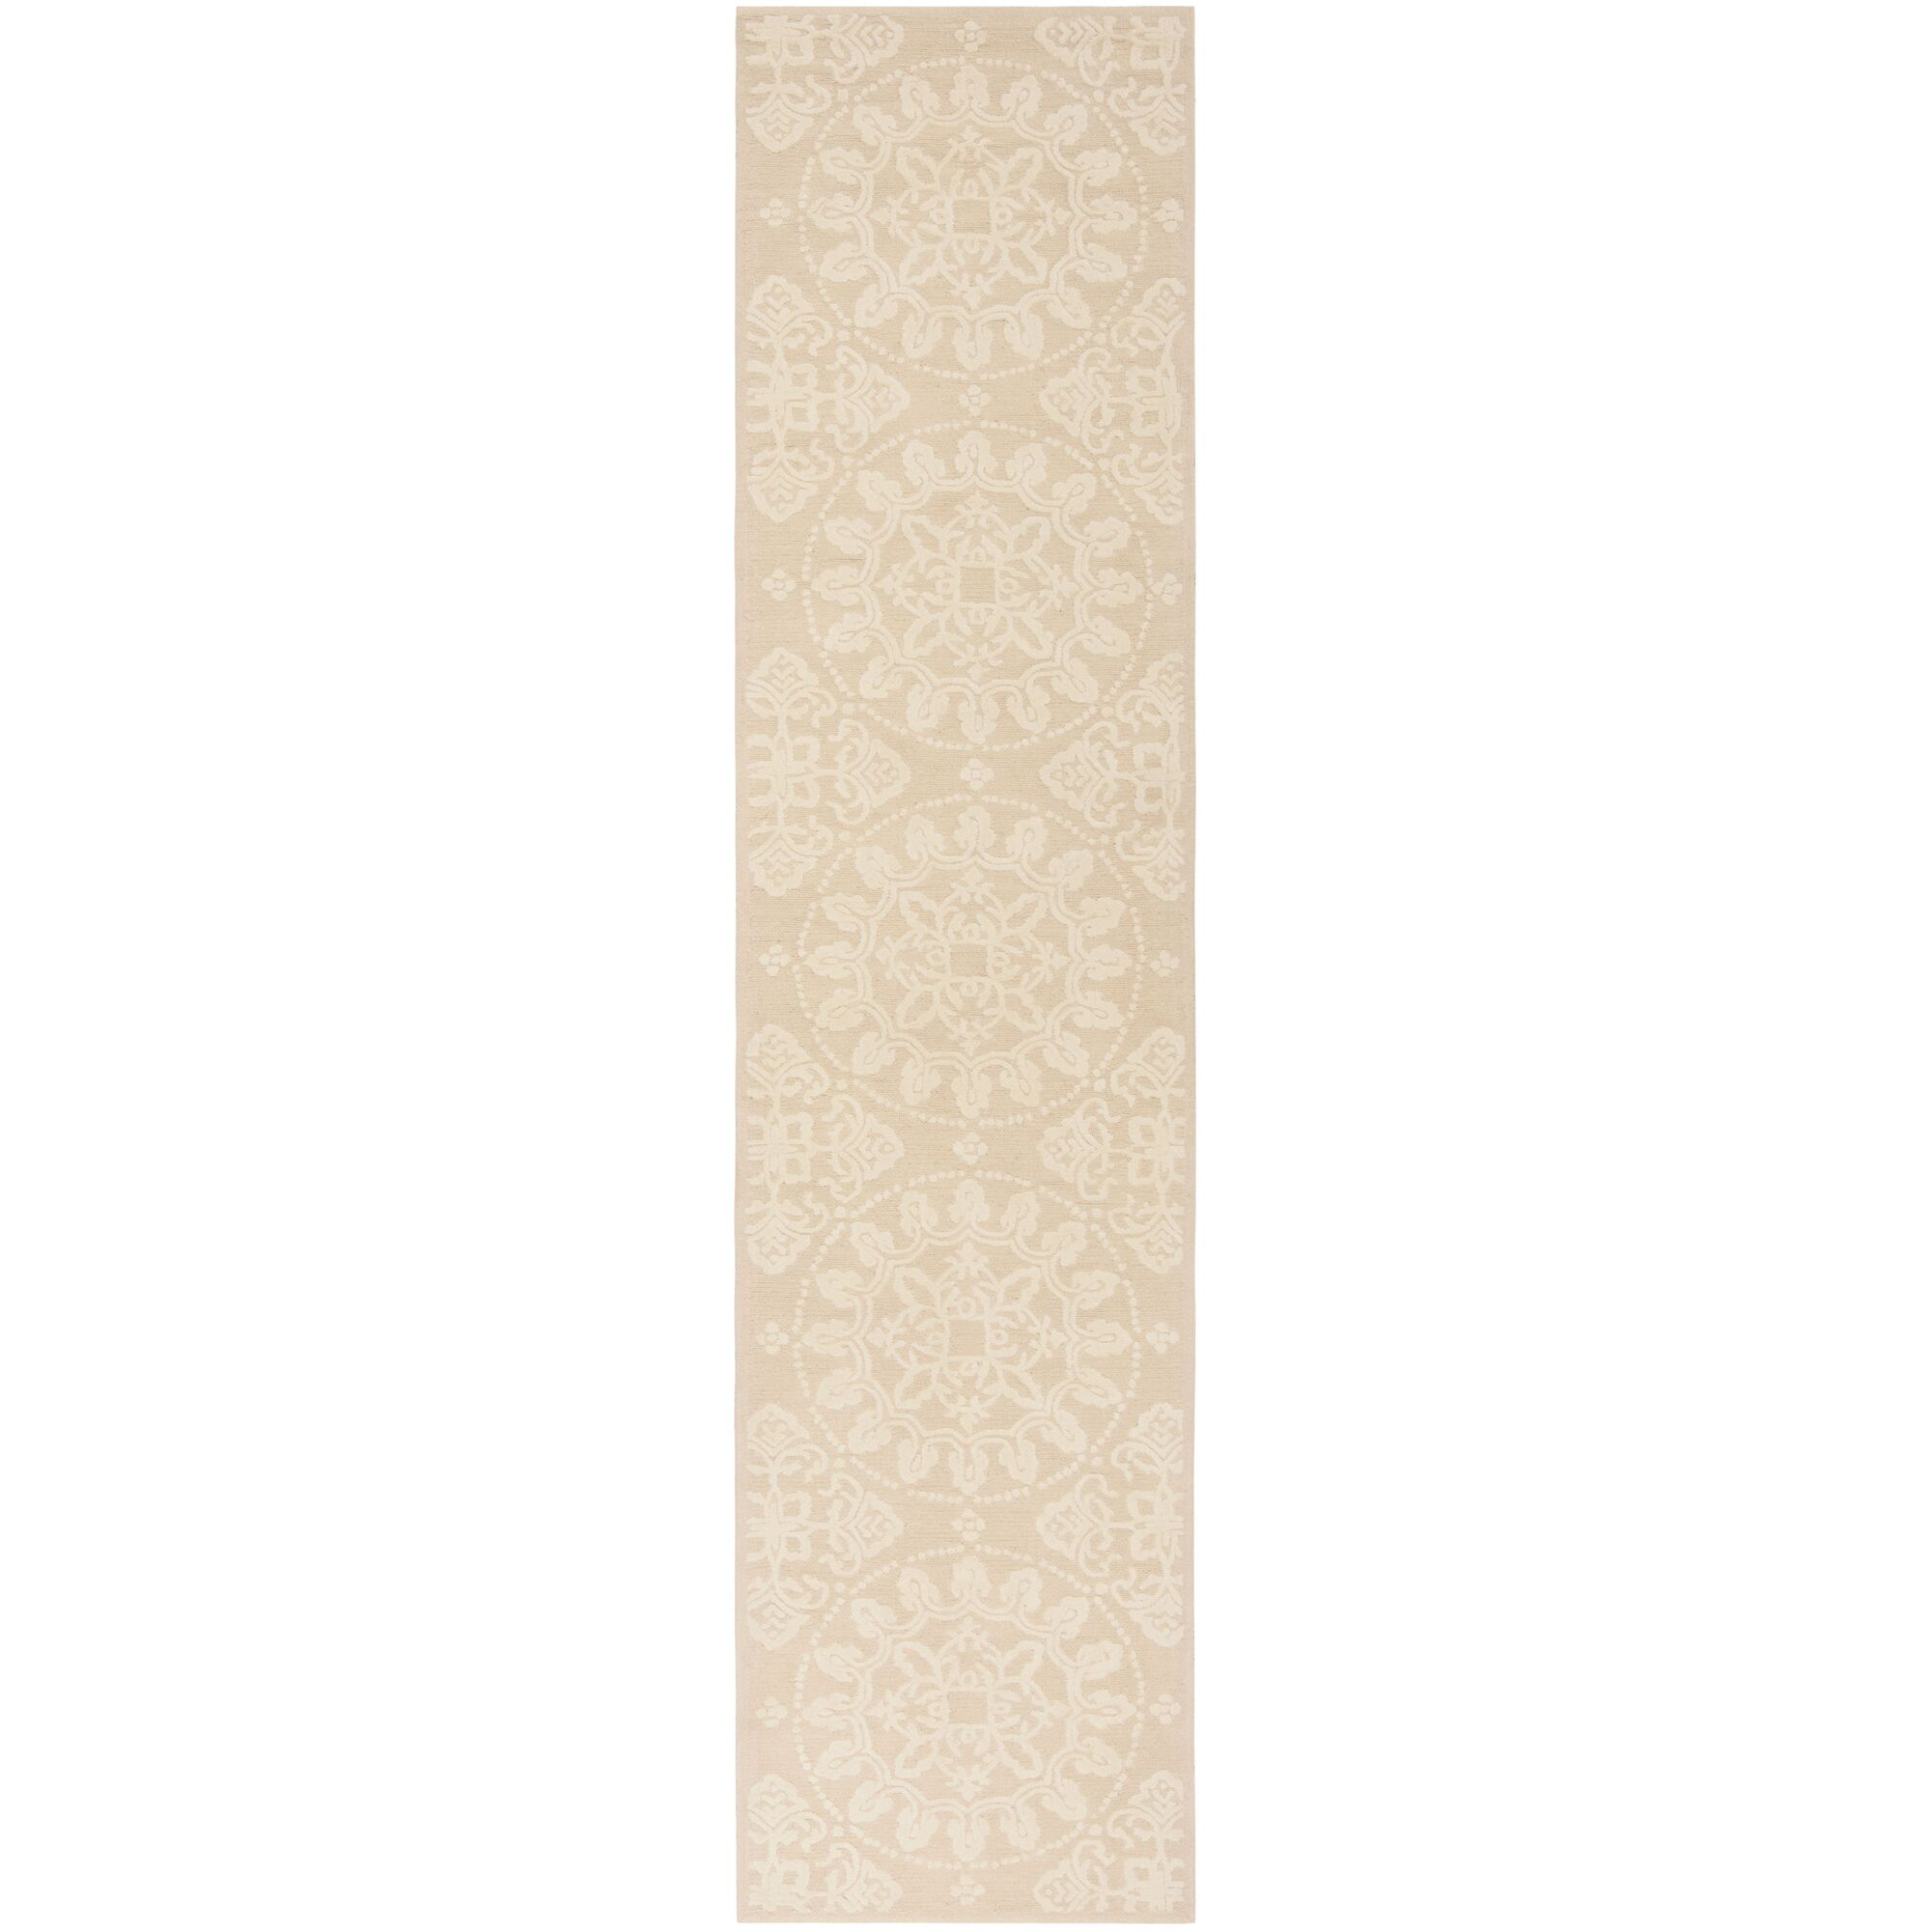 Terazza Stucco Area Rug Rug Size: Runner 2'3